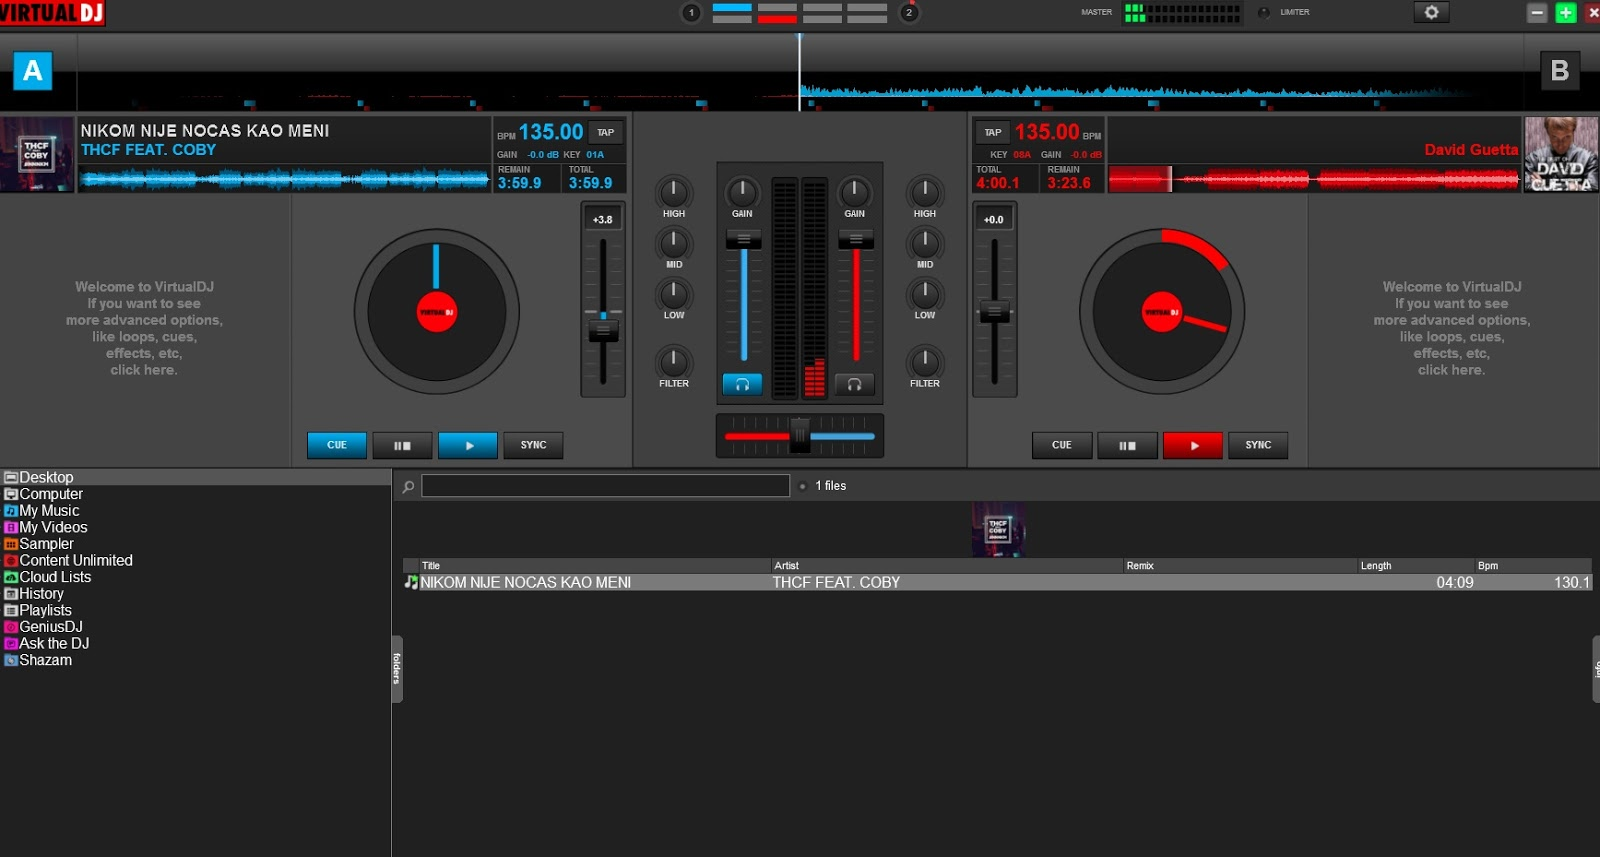 Virtual dj 8 crack + keygen download full version free.